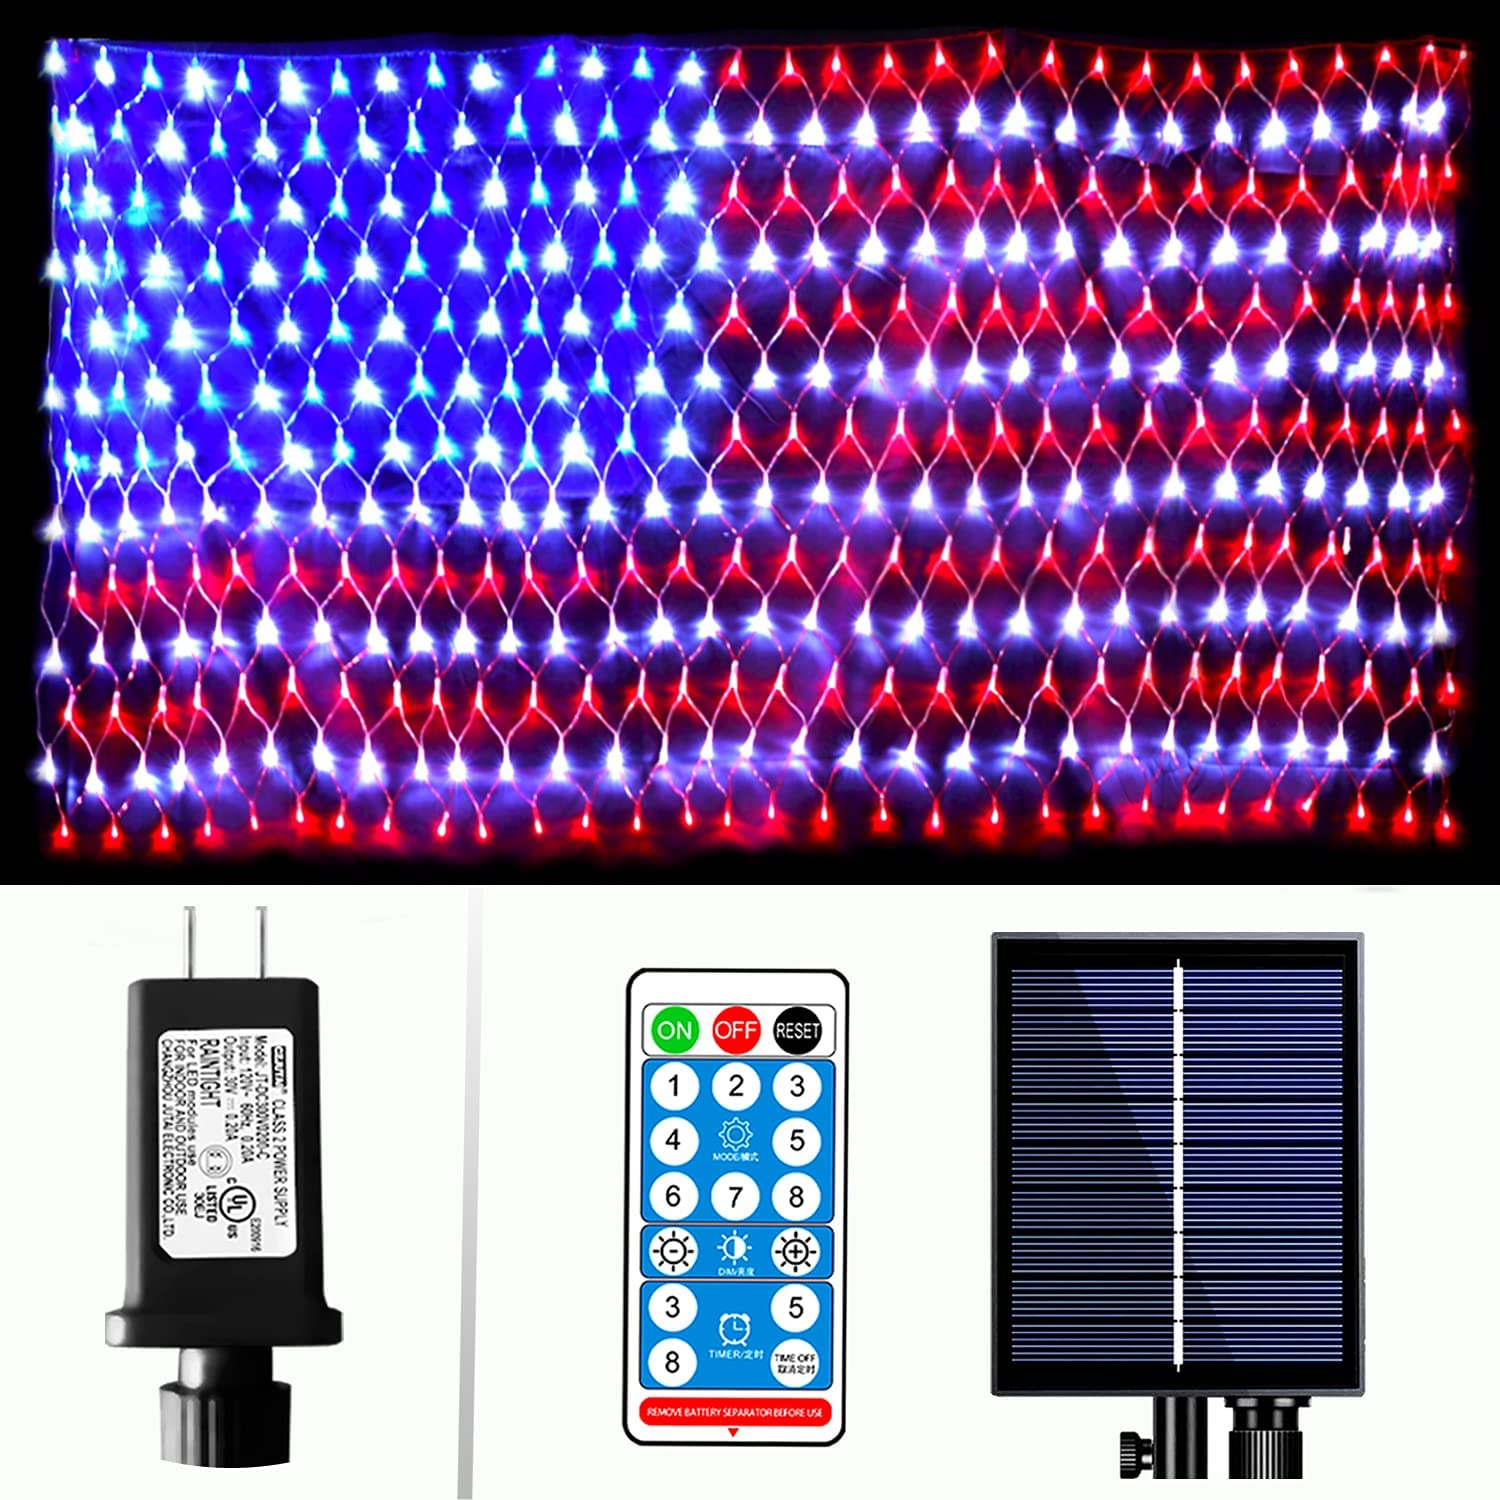 American Flag Lights Solar Outdoor, XUNXMAS 390 LED Solar & Plug in String Lights with Remote, Waterproof Flag Net Lights for Independence Day, July 4th, National Day, Memorial Day, Yard, Garden Decor